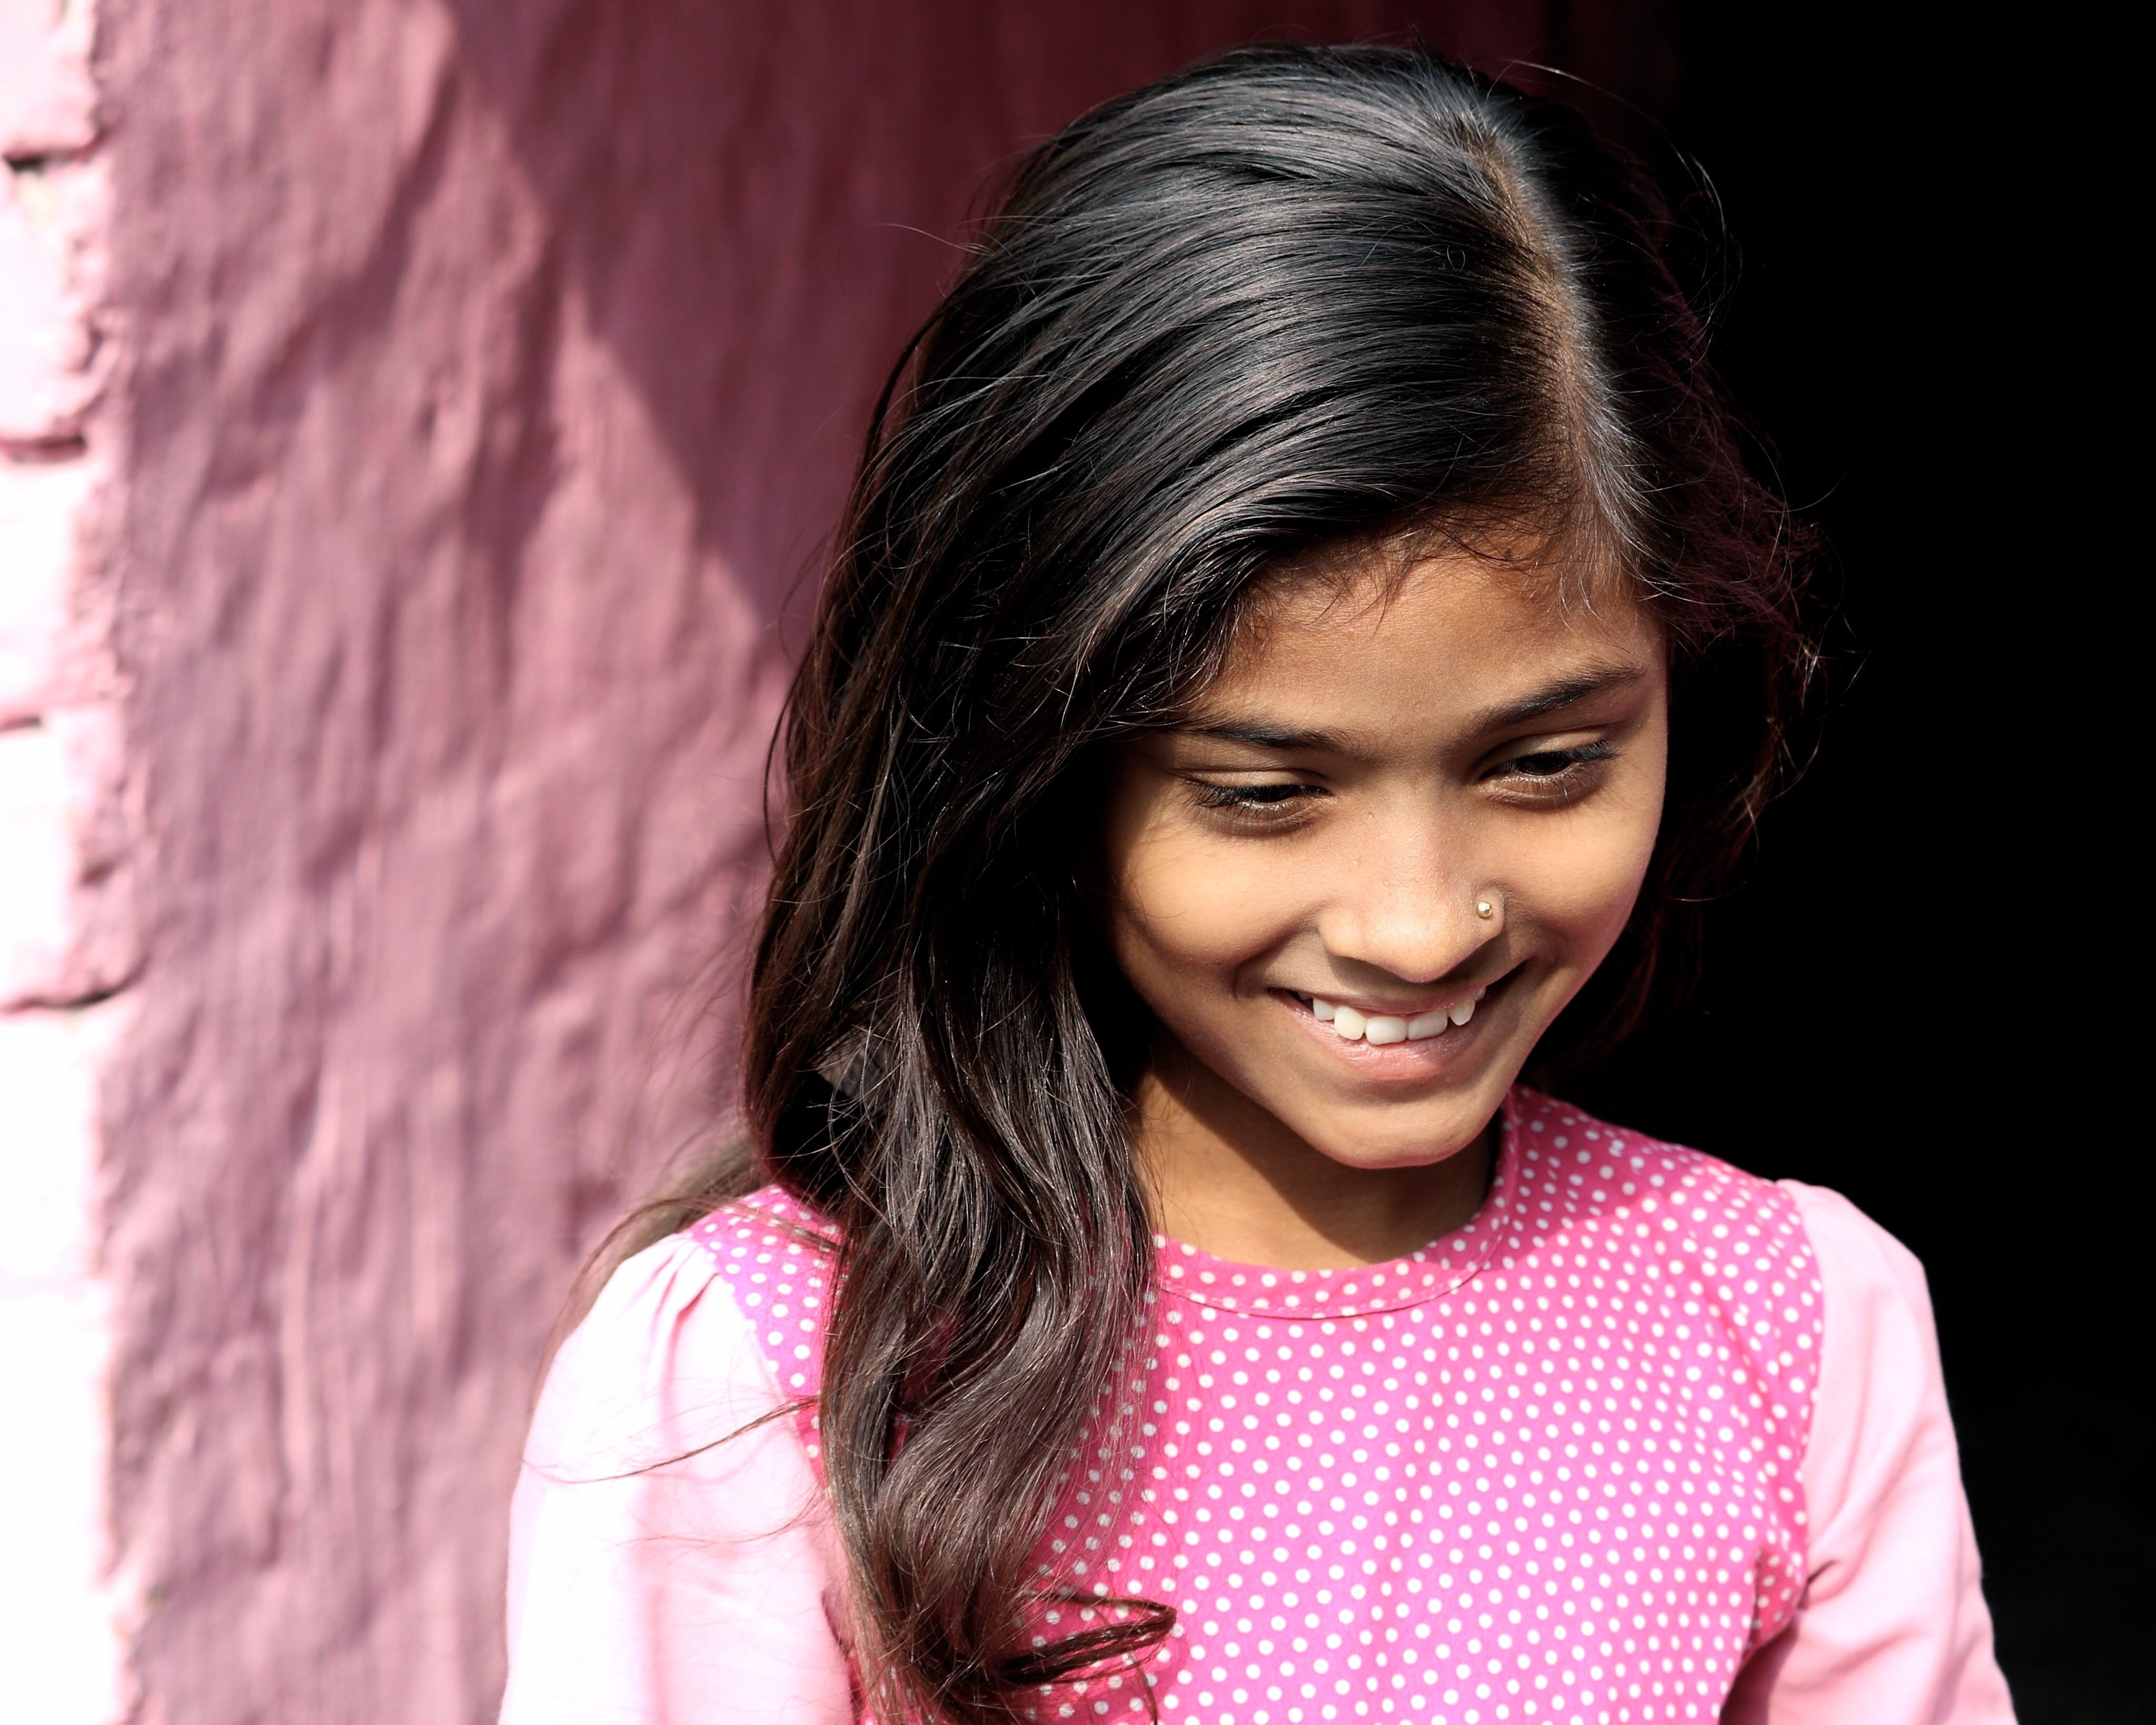 A smiling young girl in a pink shirt against a pink brick wall in Kolkata